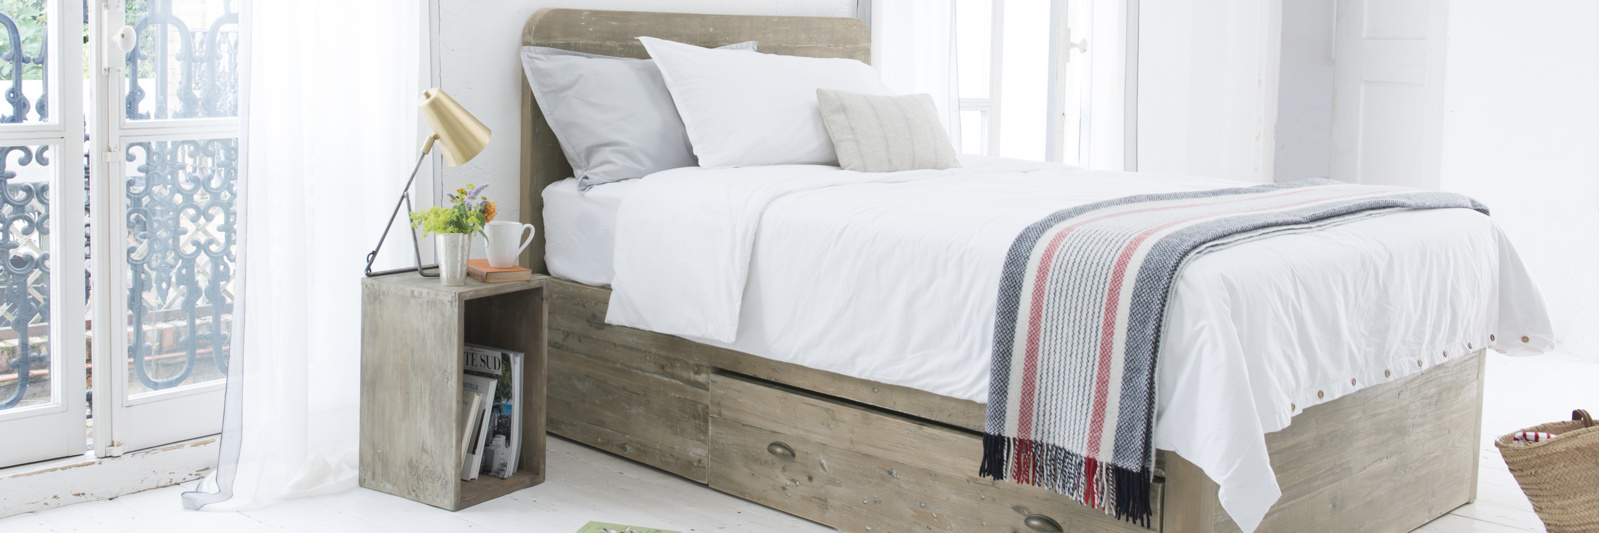 Woody storage bed handmade from reclaimed timber